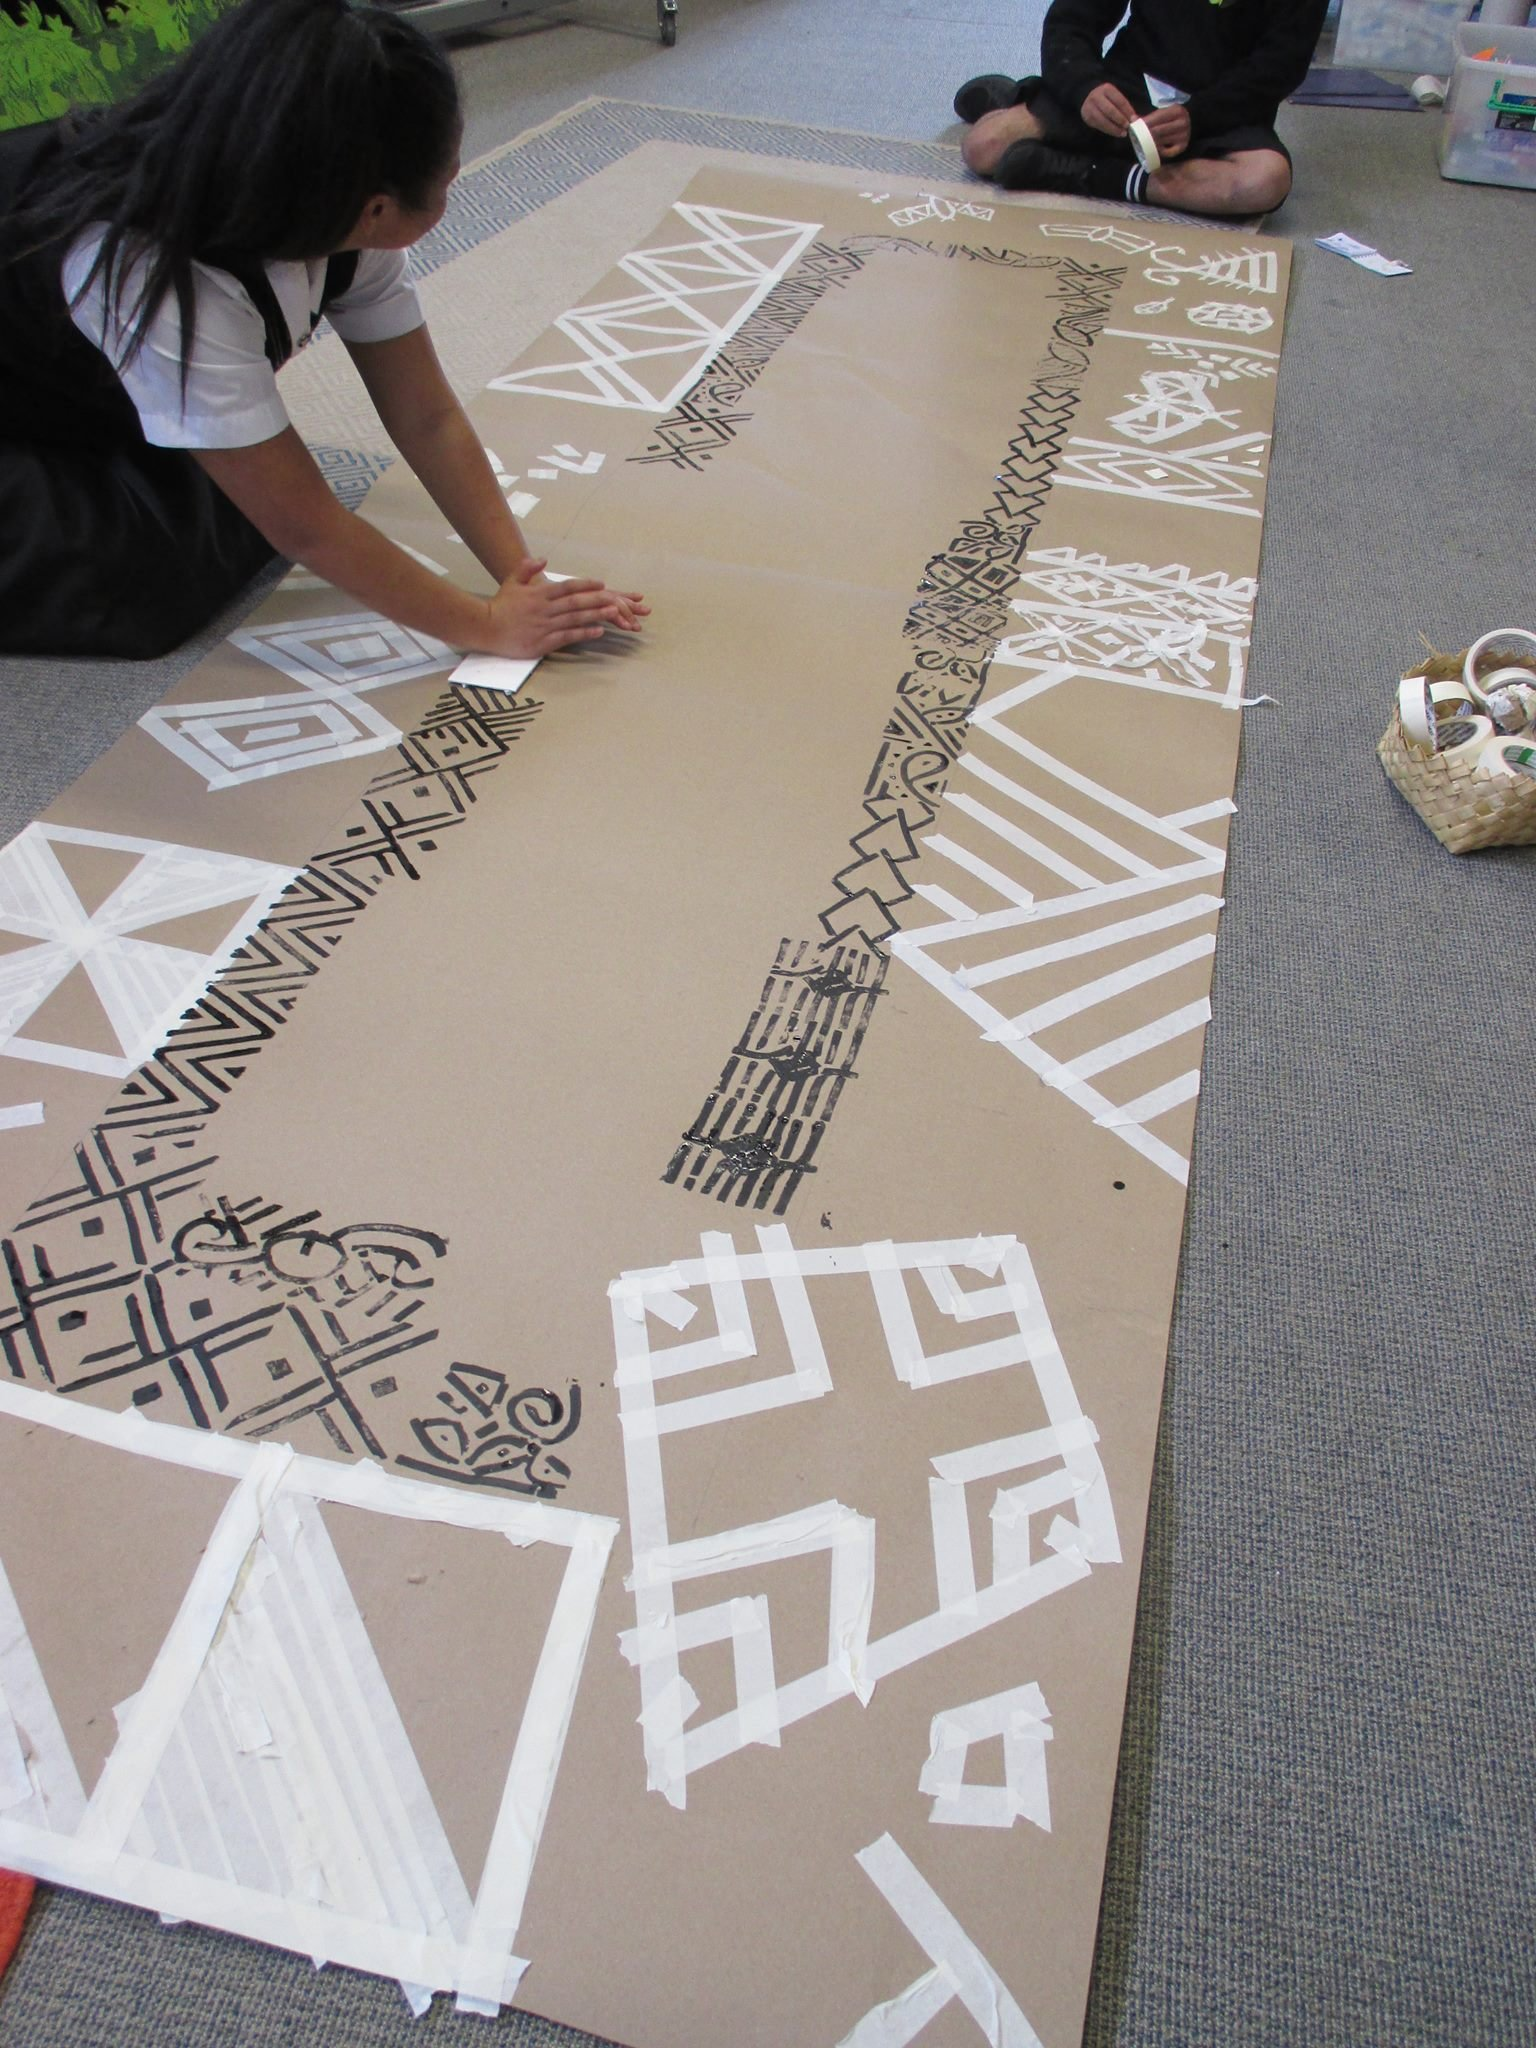 Working on our art in Pasifika school programme